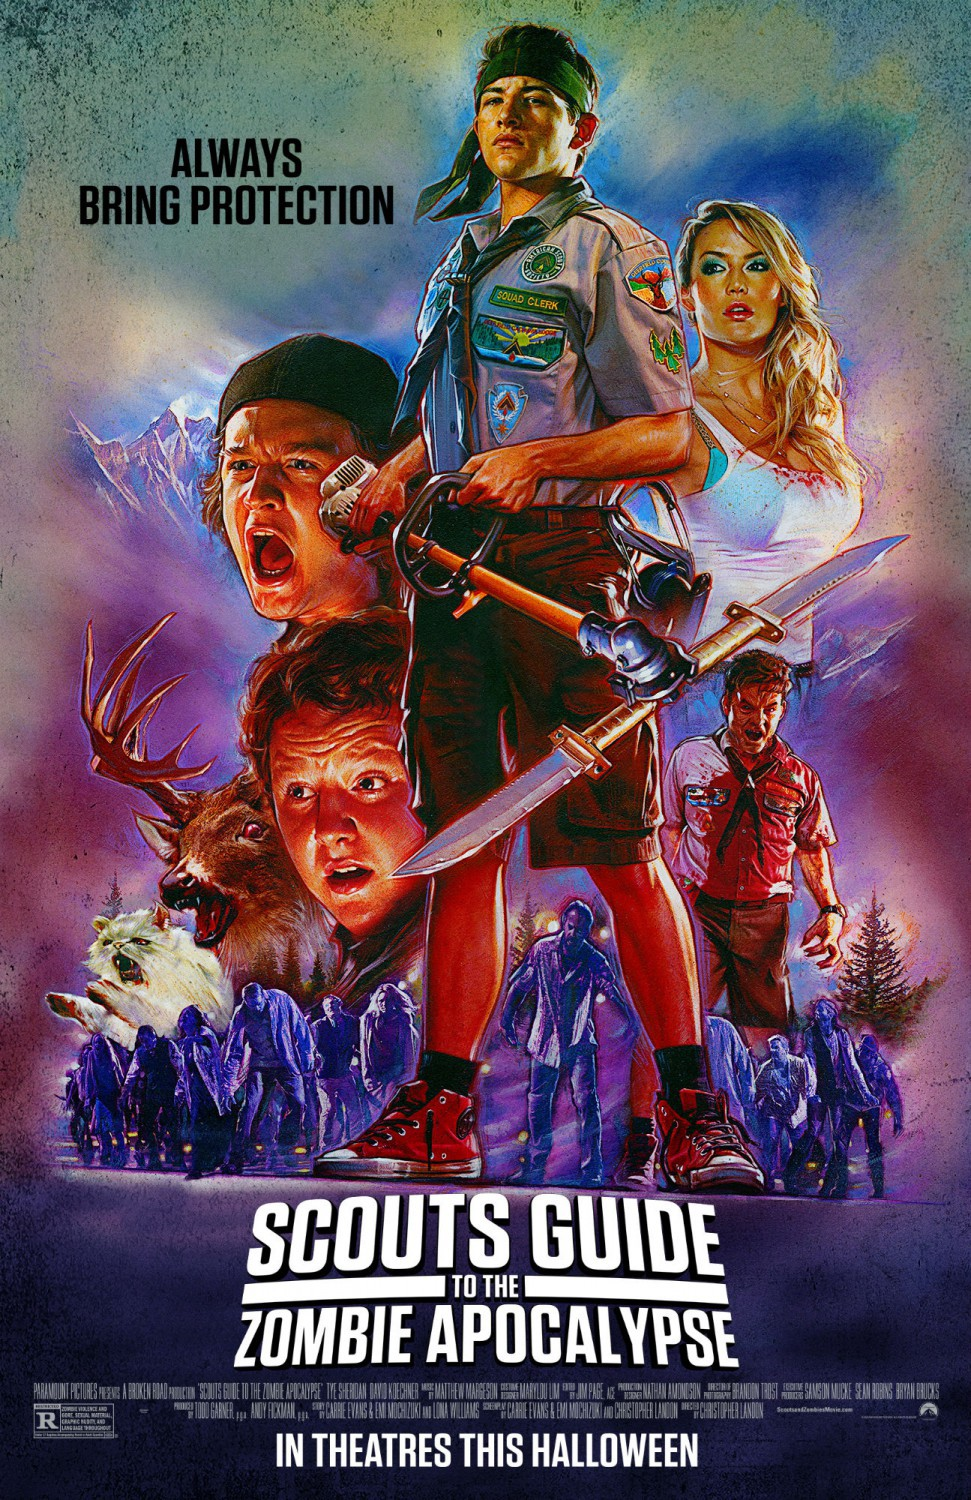 scouts guide to the zombie apocalypse 2015 imdbpro